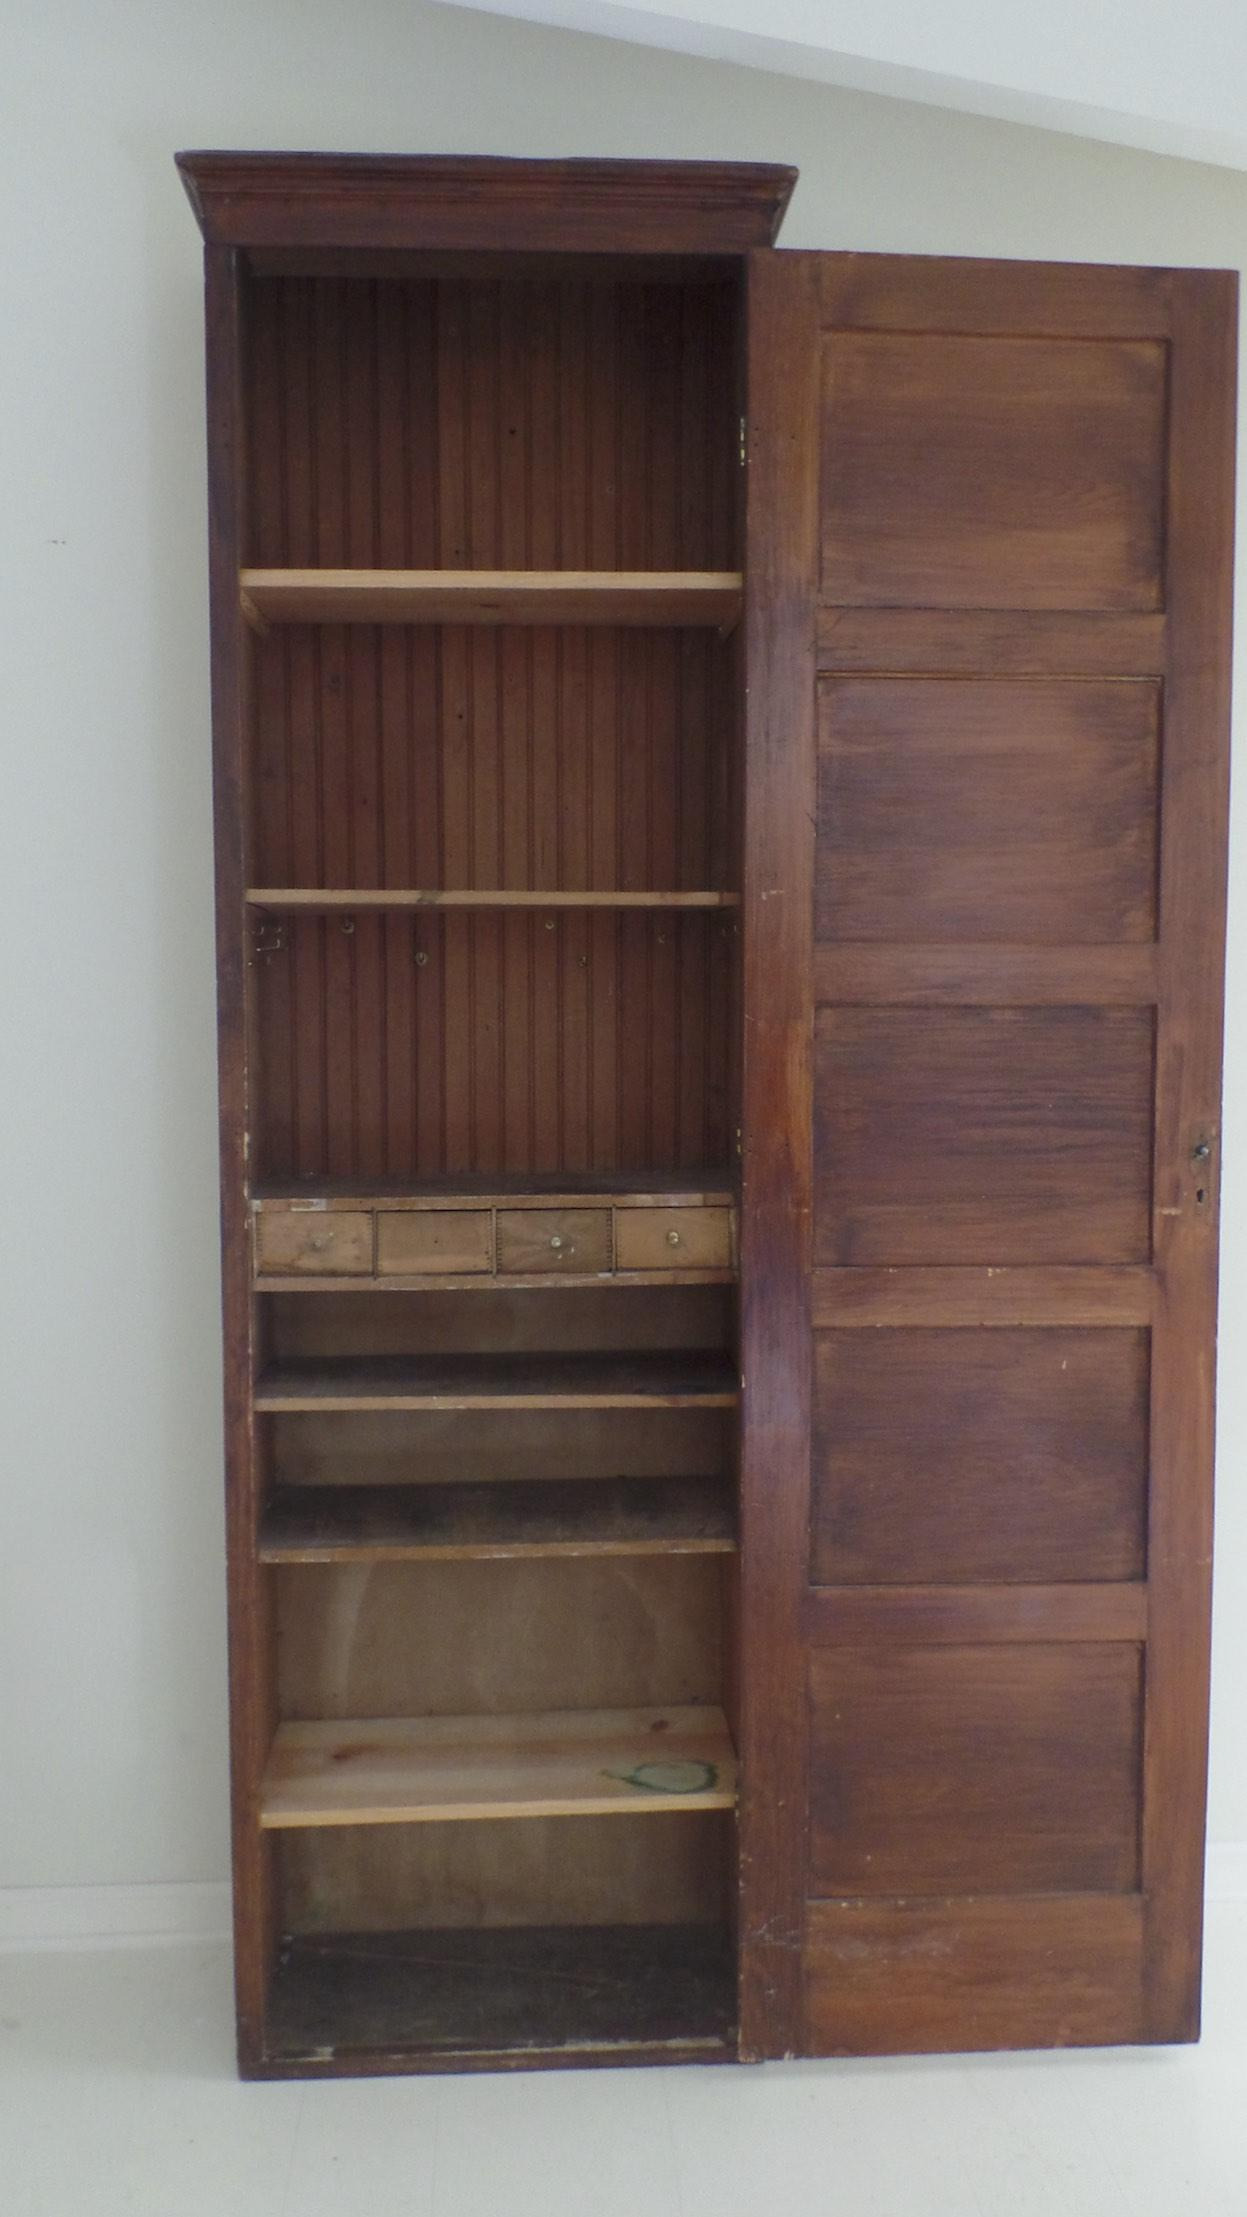 Wooden Storage Cabinets with Doors Lovely Elegant Storage Cabinet with Door and Shelf 38 Decofurnish